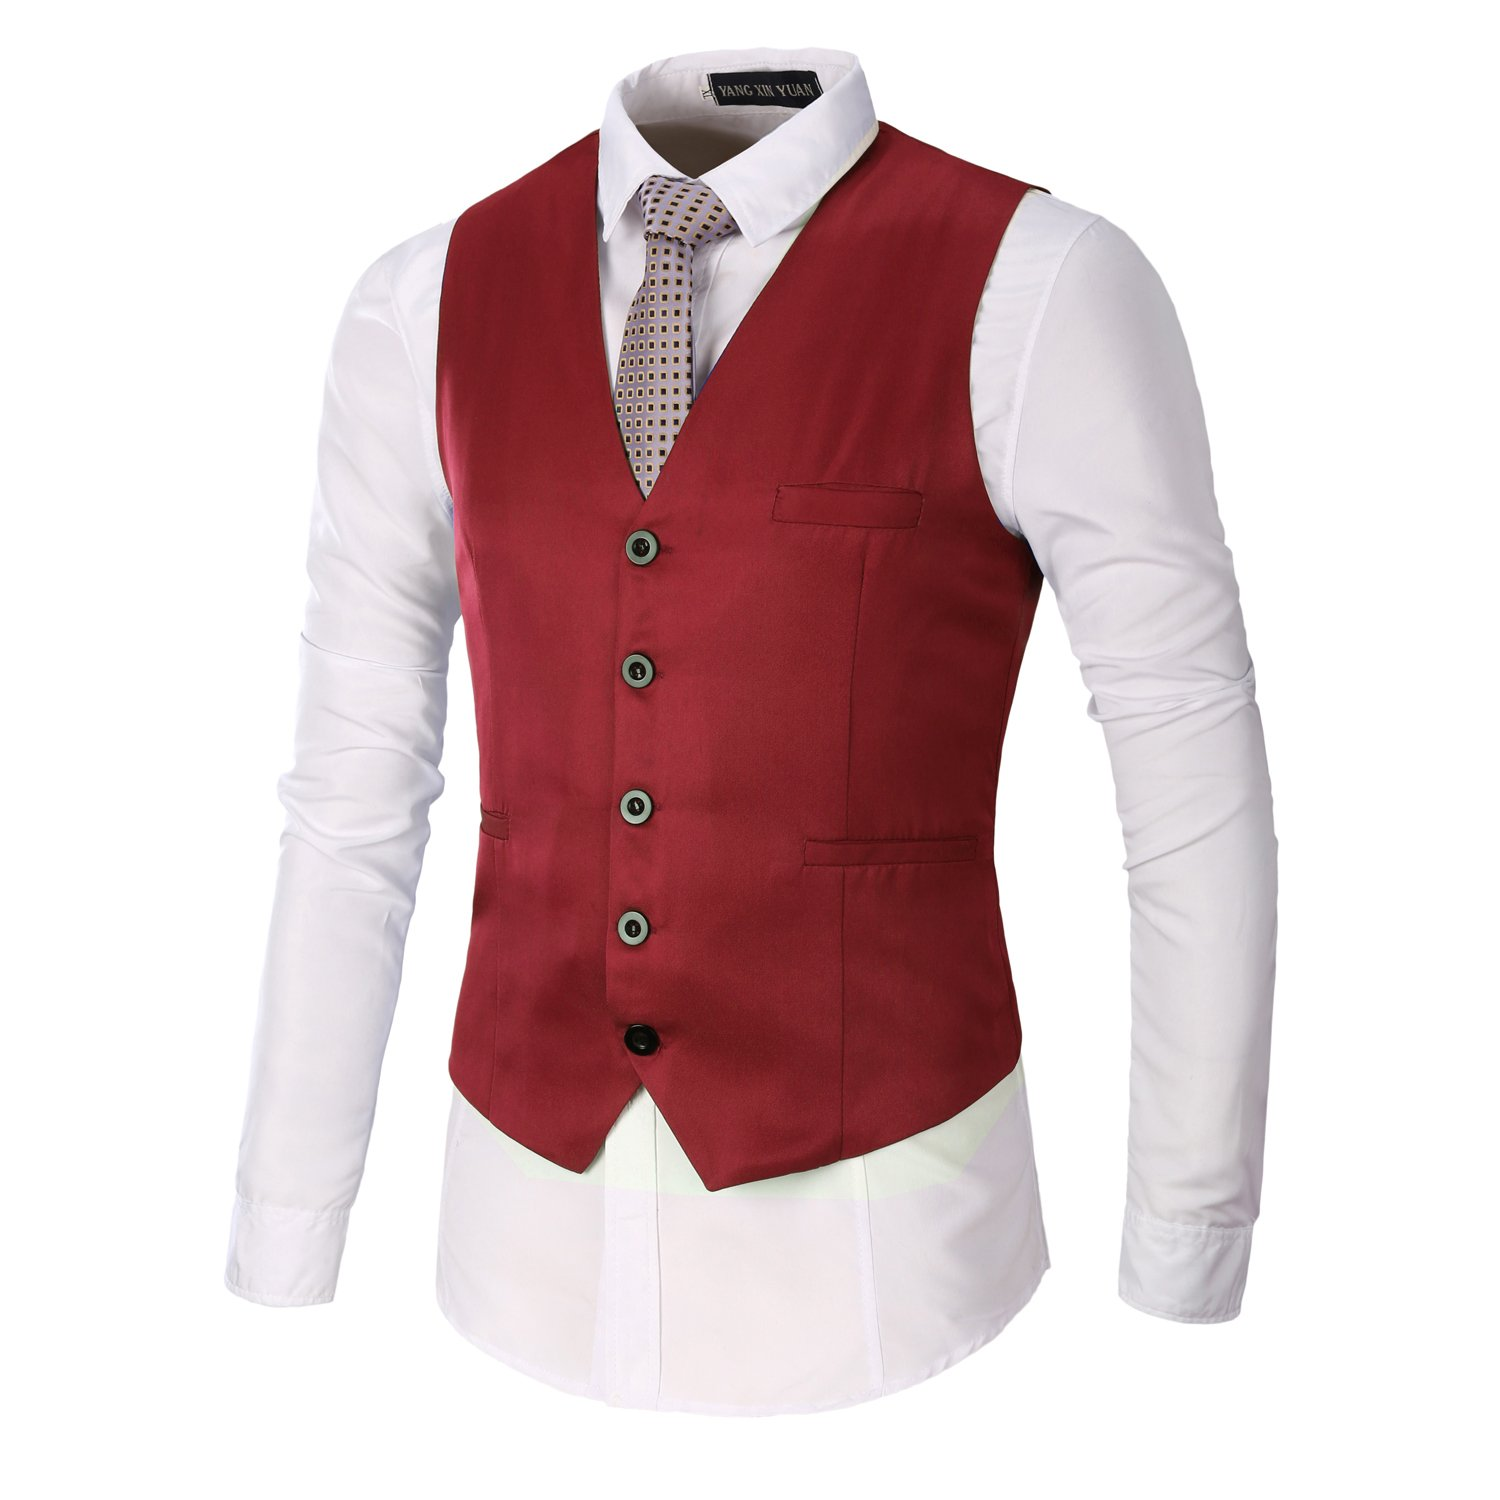 Men's Vintage Vests, Sweater Vests AOYOG Mens Business Suit Vests Waistcoat Slim Fit for Suit or Tuxedo $20.99 AT vintagedancer.com